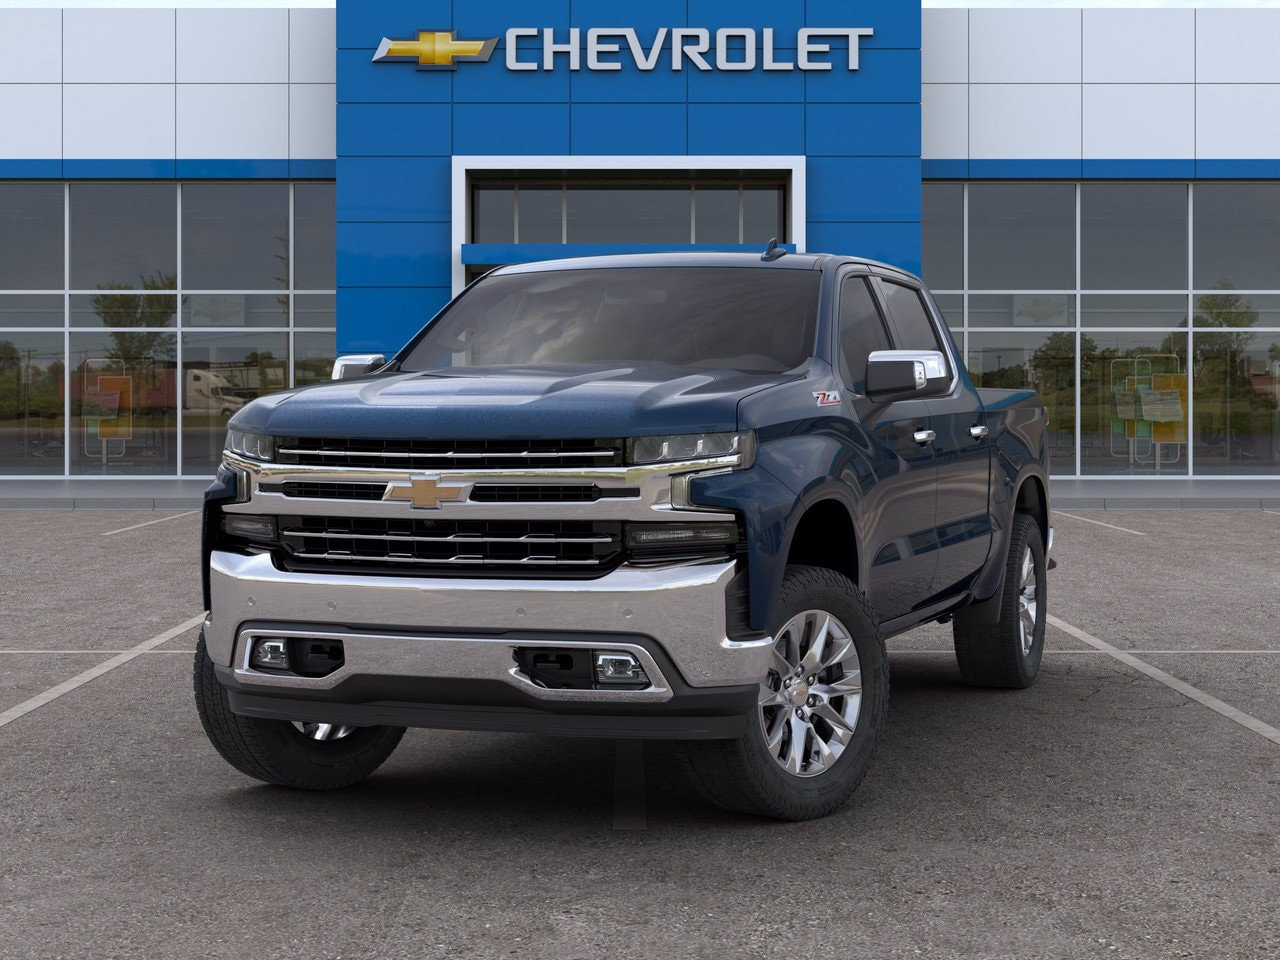 2020 Chevrolet Silverado 1500 Crew Cab 4x4, Pickup #C201434 - photo 6